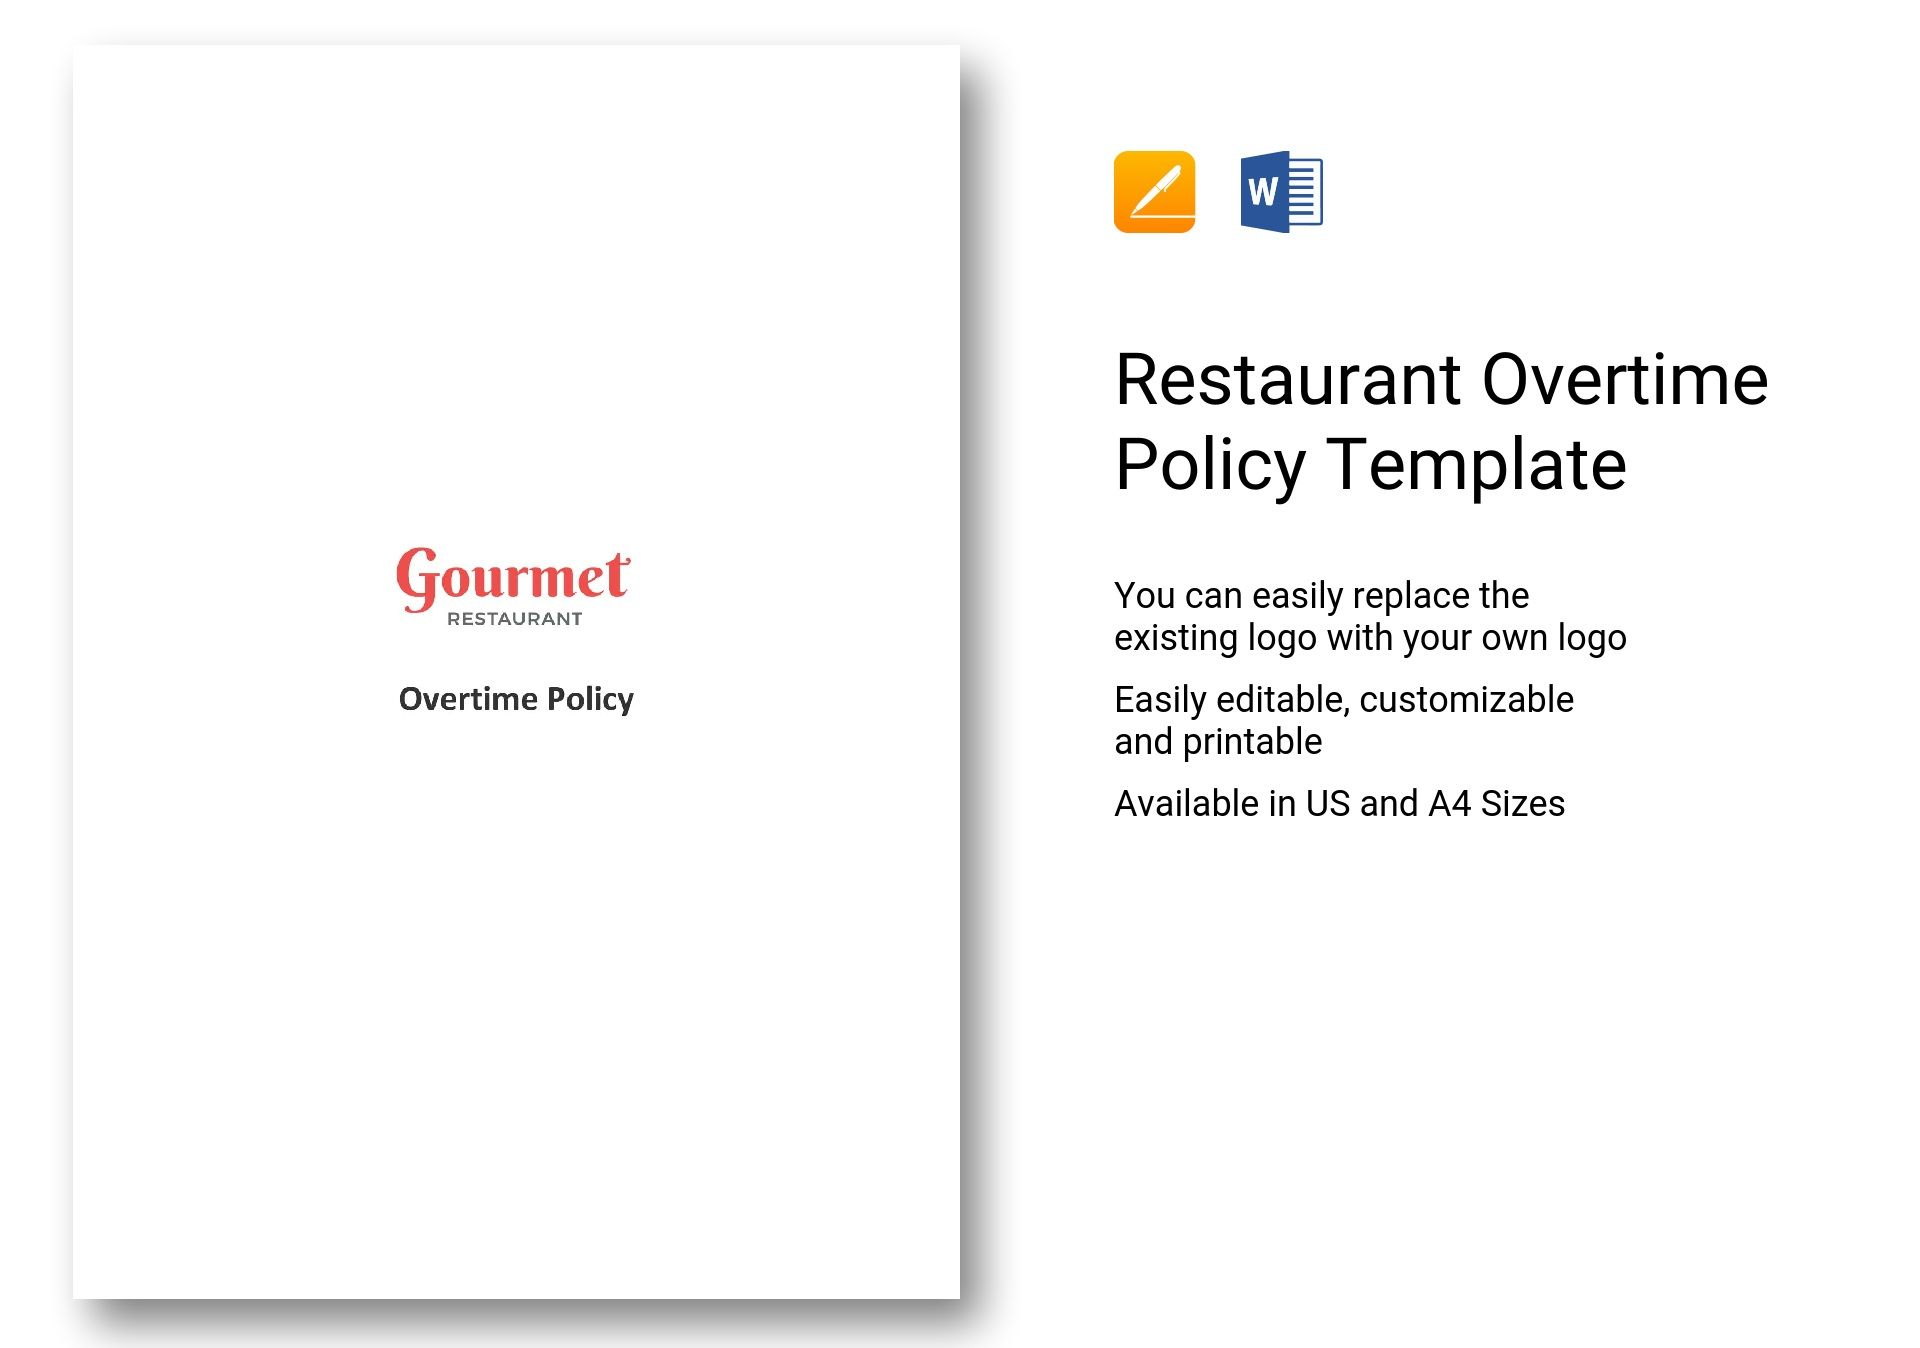 Restaurant Overtime Policy